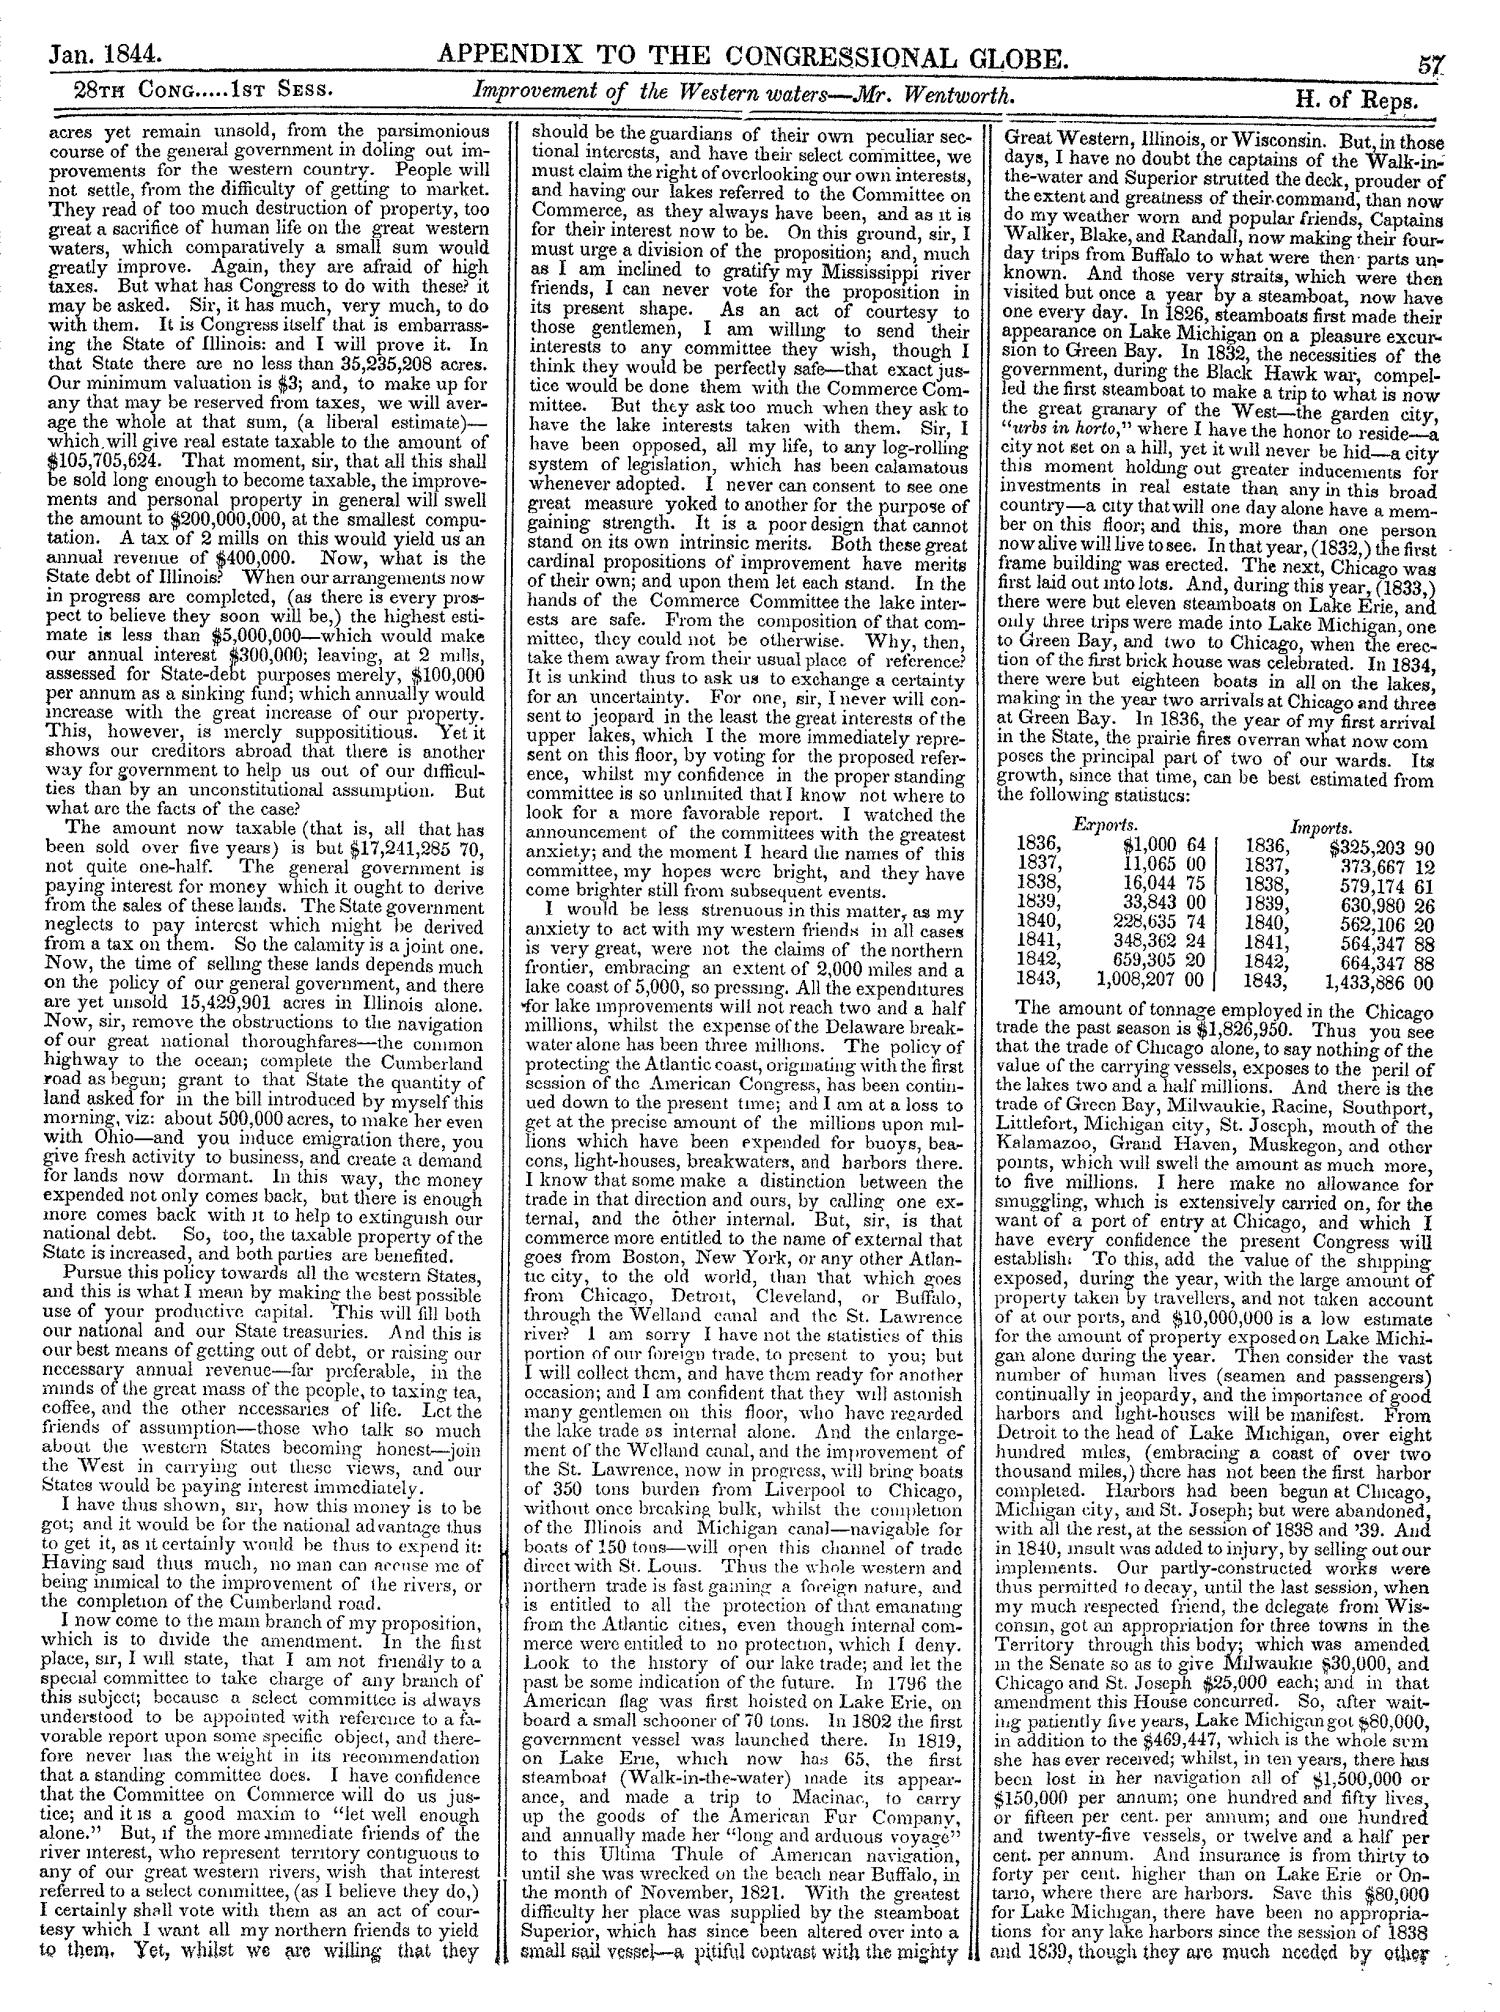 The Congressional Globe, Volume 13, Part 2: Twenty-Eighth Congress, First Session                                                                                                      57